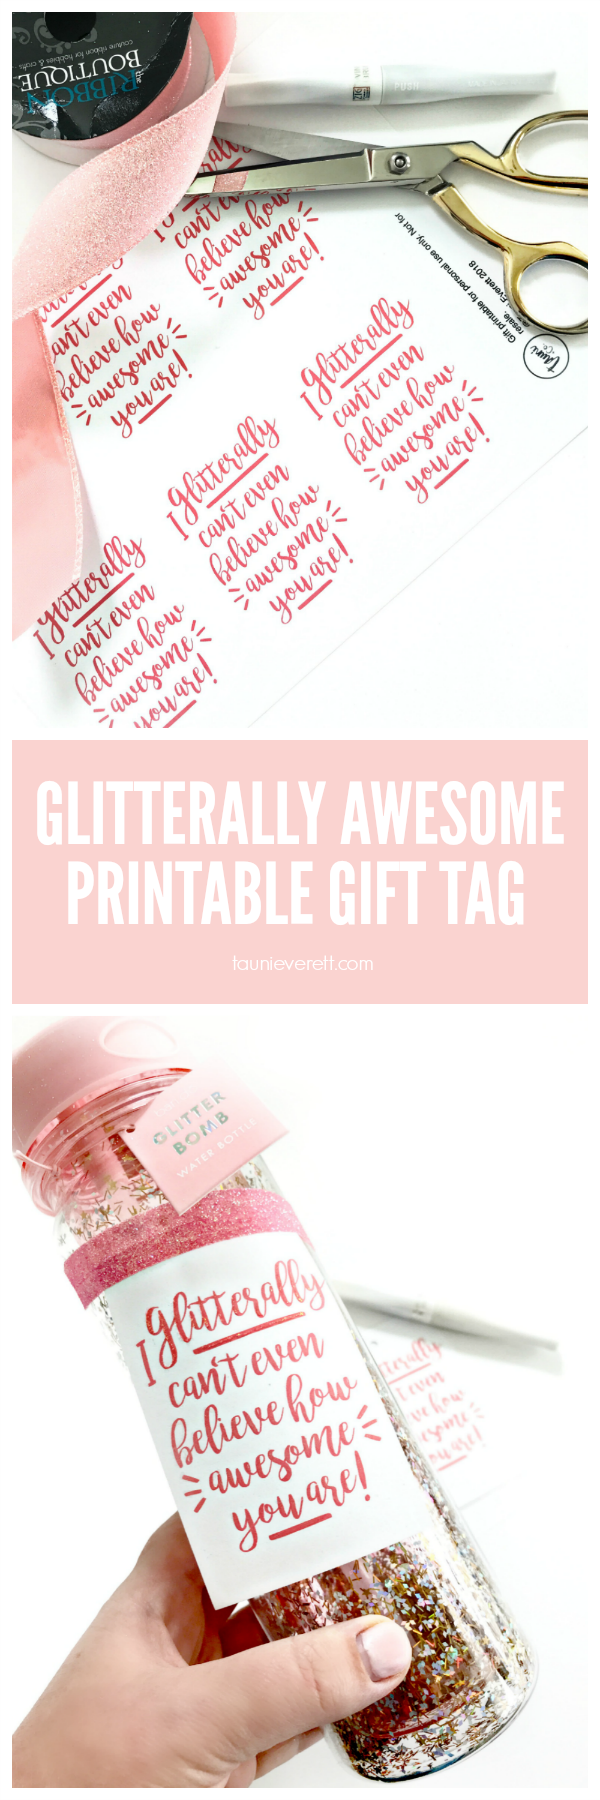 Glitterally Awesome Gift Tag Printable #thankyou #birthdaygift #printable